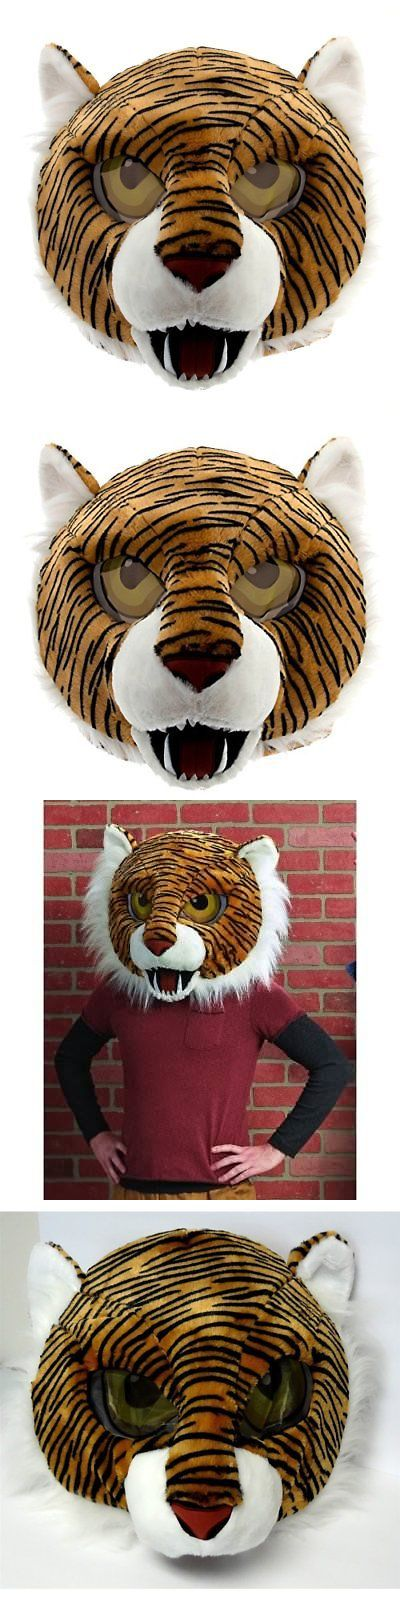 Maskimals Tiger Head Mask Large Halloween Costume | Halloween costumes Tigers and Masking : tiger head costume  - Germanpascual.Com